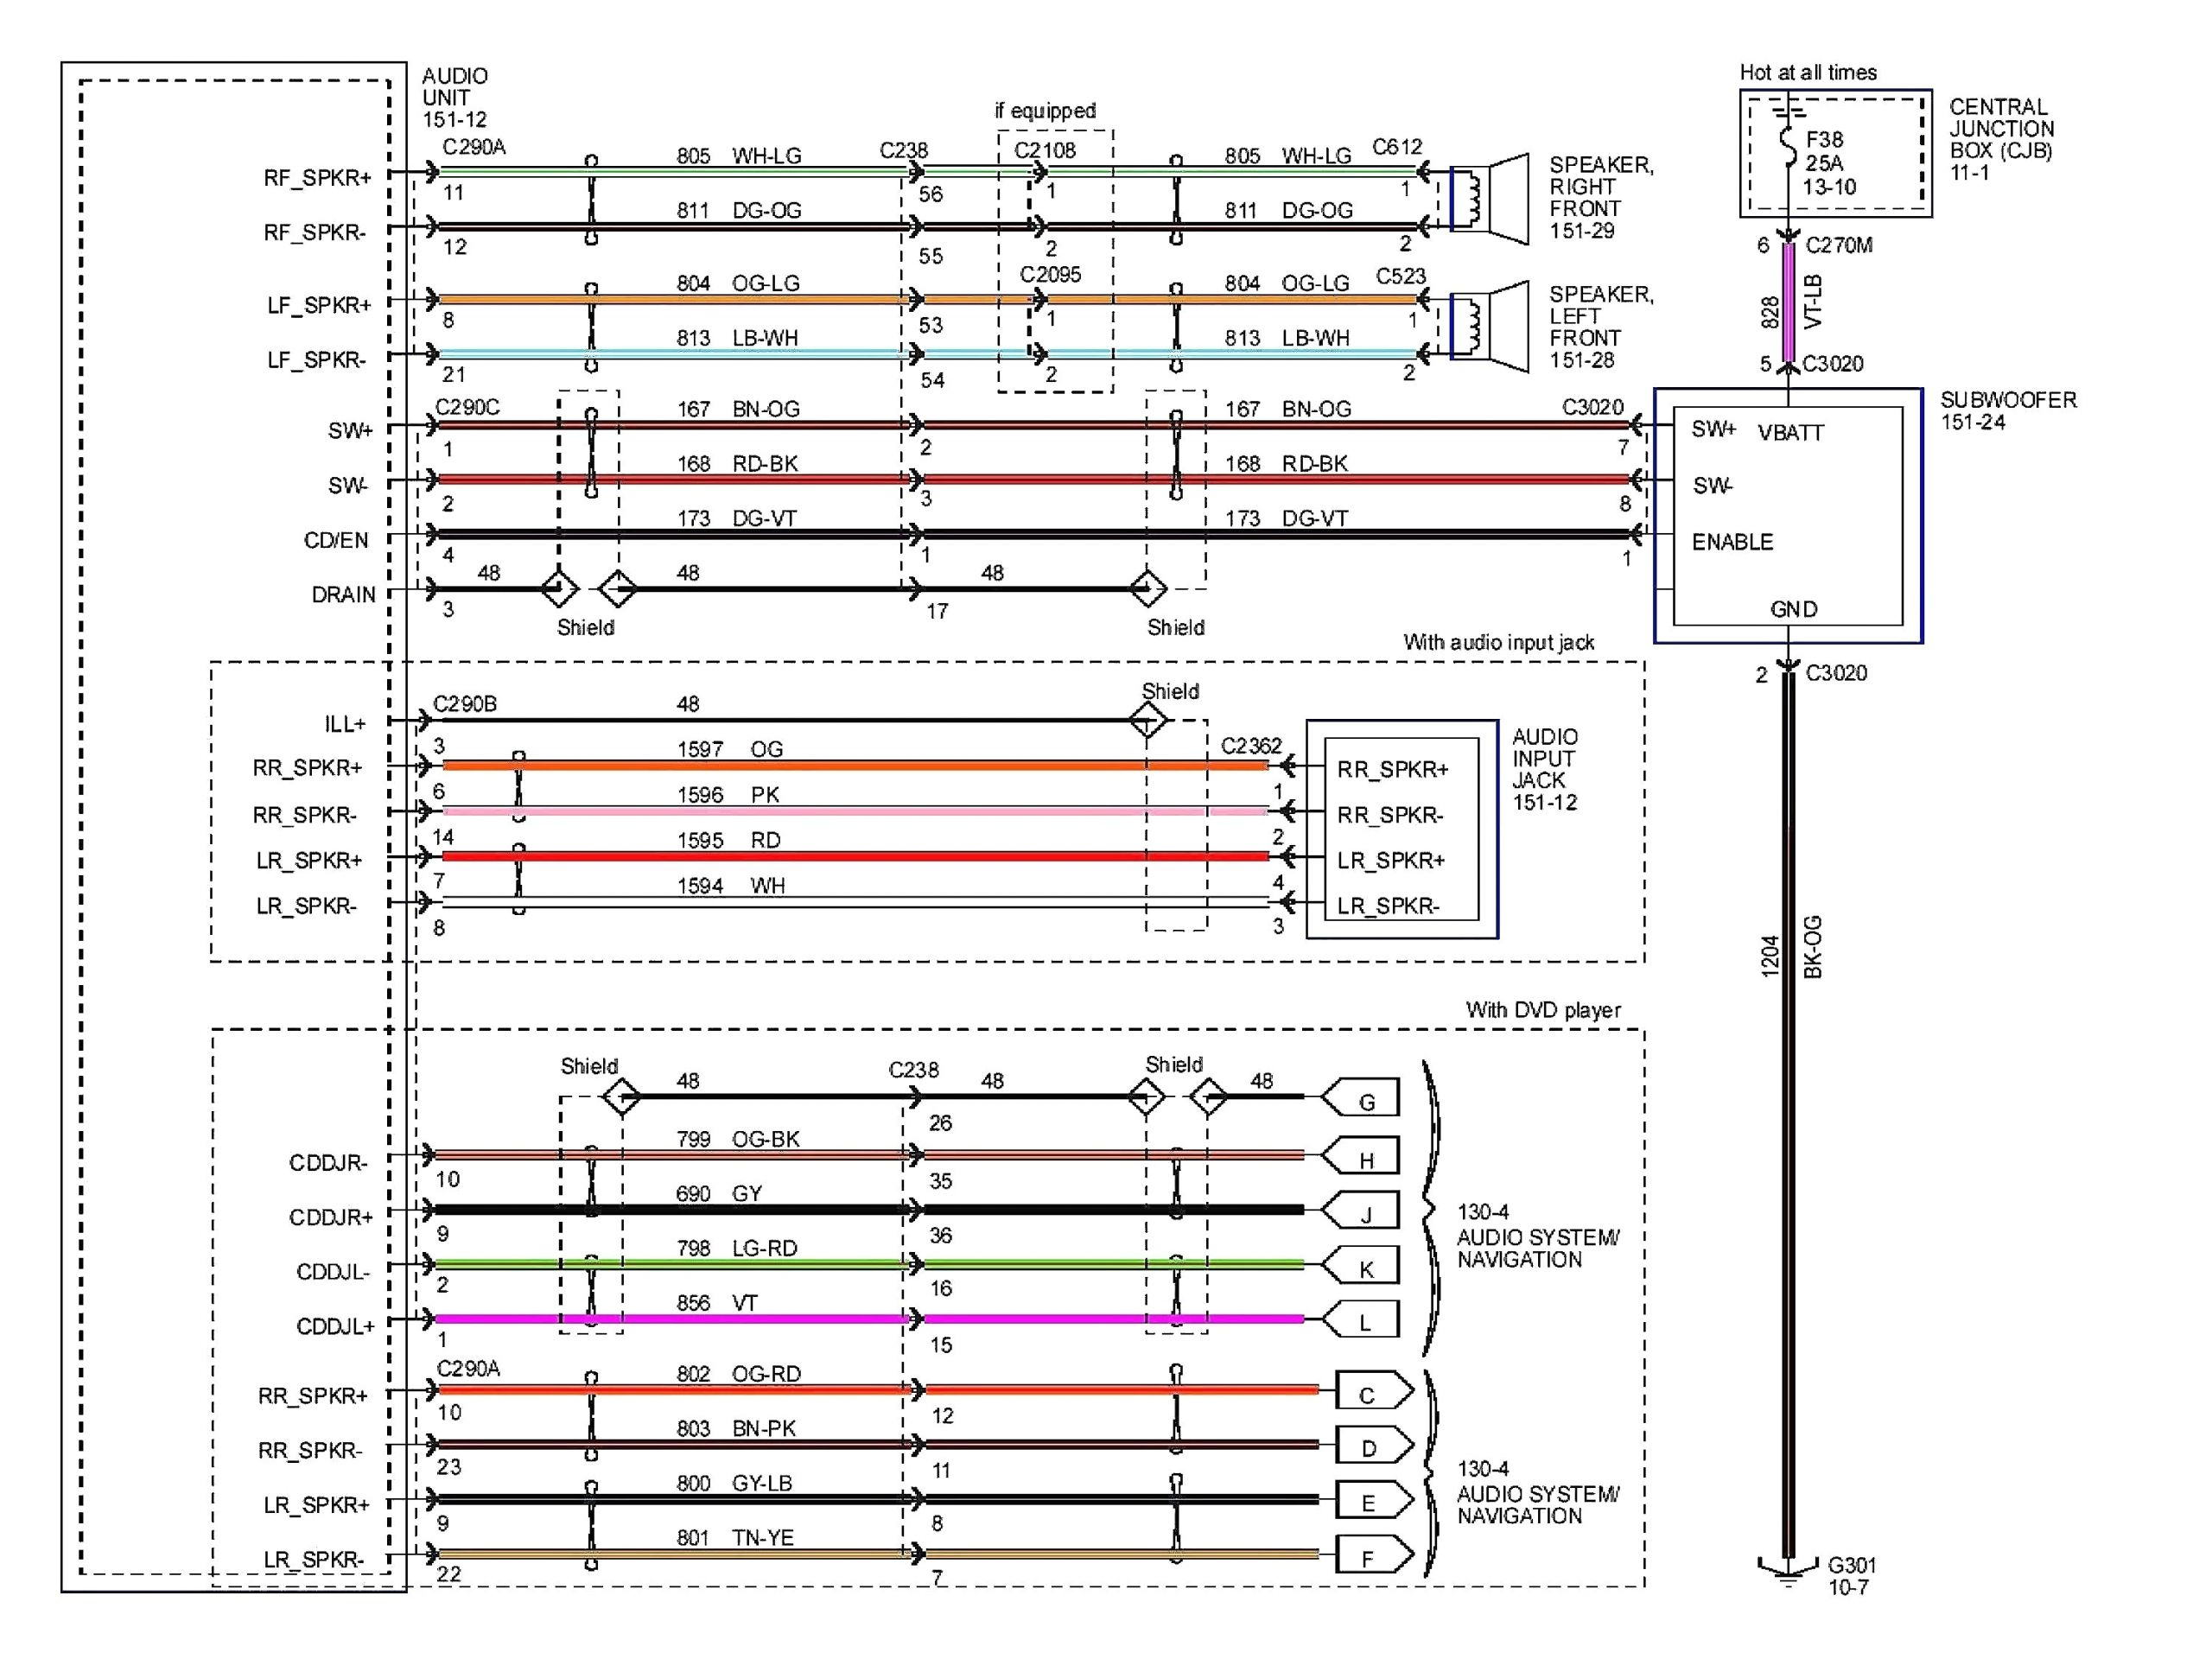 2007 toyota Camry Stereo Wiring Diagram 2008 Dodge Magnum Radio Wiring Diagram Giant Repeat24